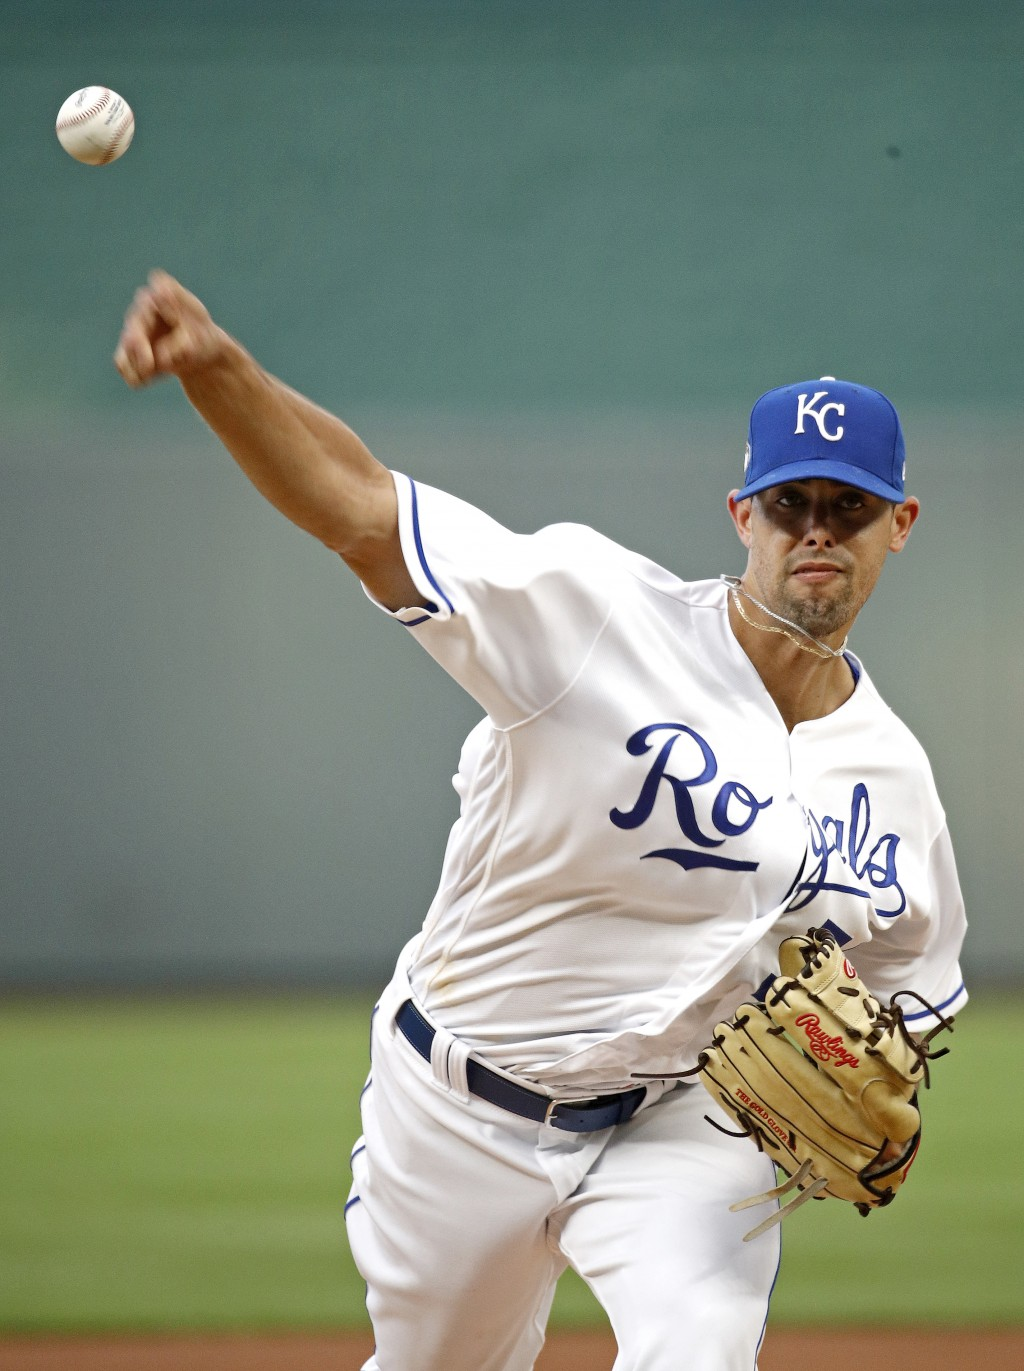 Kansas City Royals starting pitcher Jorge Lopez throws during the first inning of the team's baseball game against the Toronto Blue Jays on Wednesday,...